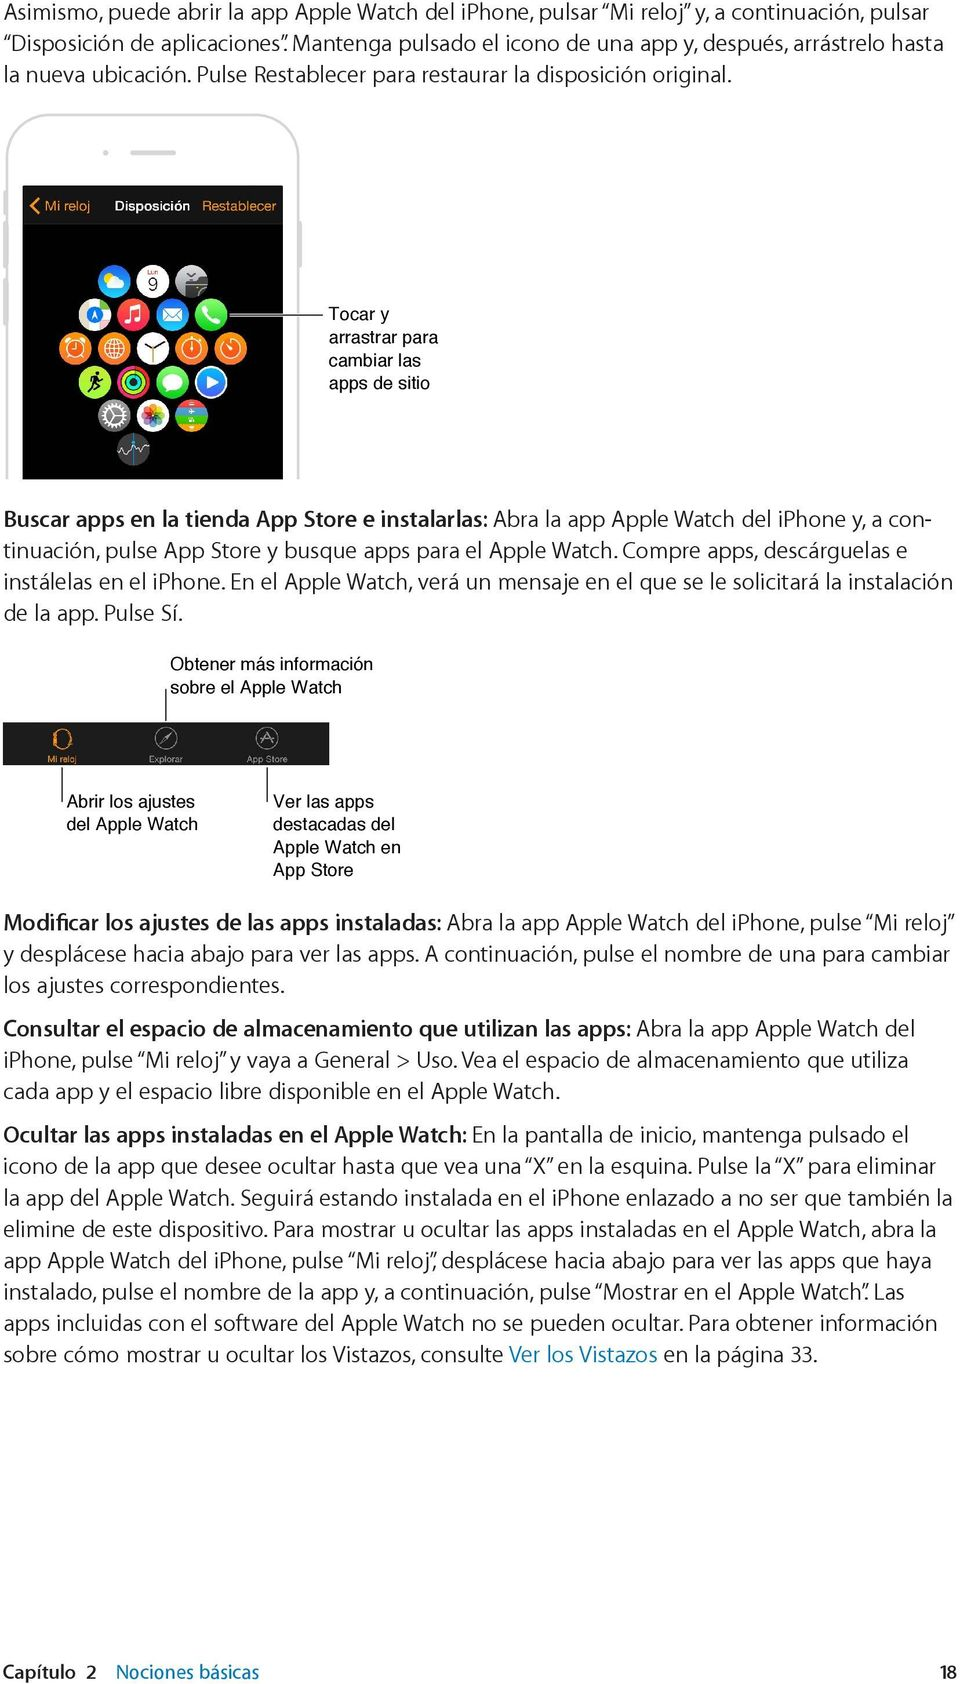 Tocar y arrastrar para cambiar las apps de sitio Buscar apps en la tienda App Store e instalarlas: Abra la app Apple Watch del iphone y, a continuación, pulse App Store y busque apps para el Apple